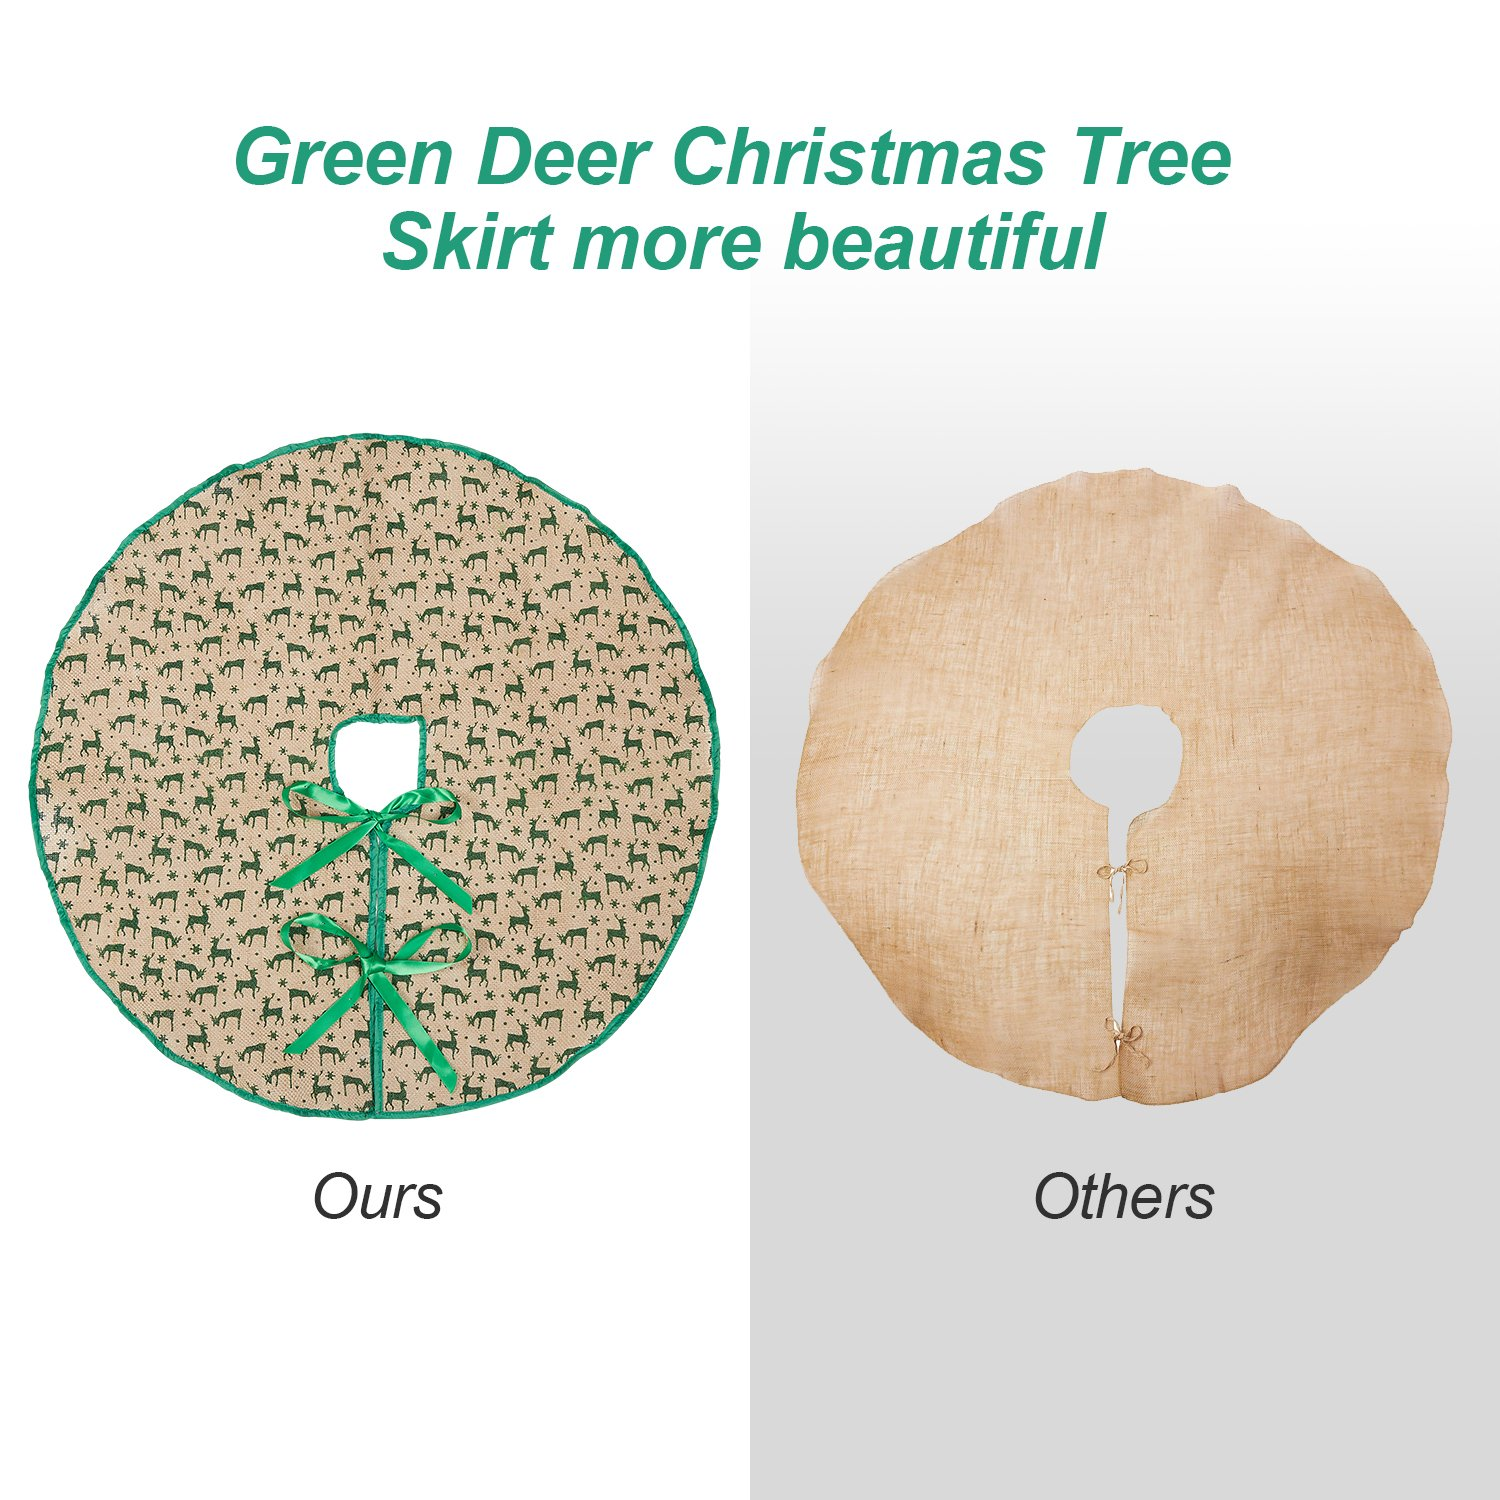 Marry Acting 30 Burlap Christmas Tree Skirt Green Deers with Trim Tree Mat for Xmas Party Home Decoration A59L0-DW